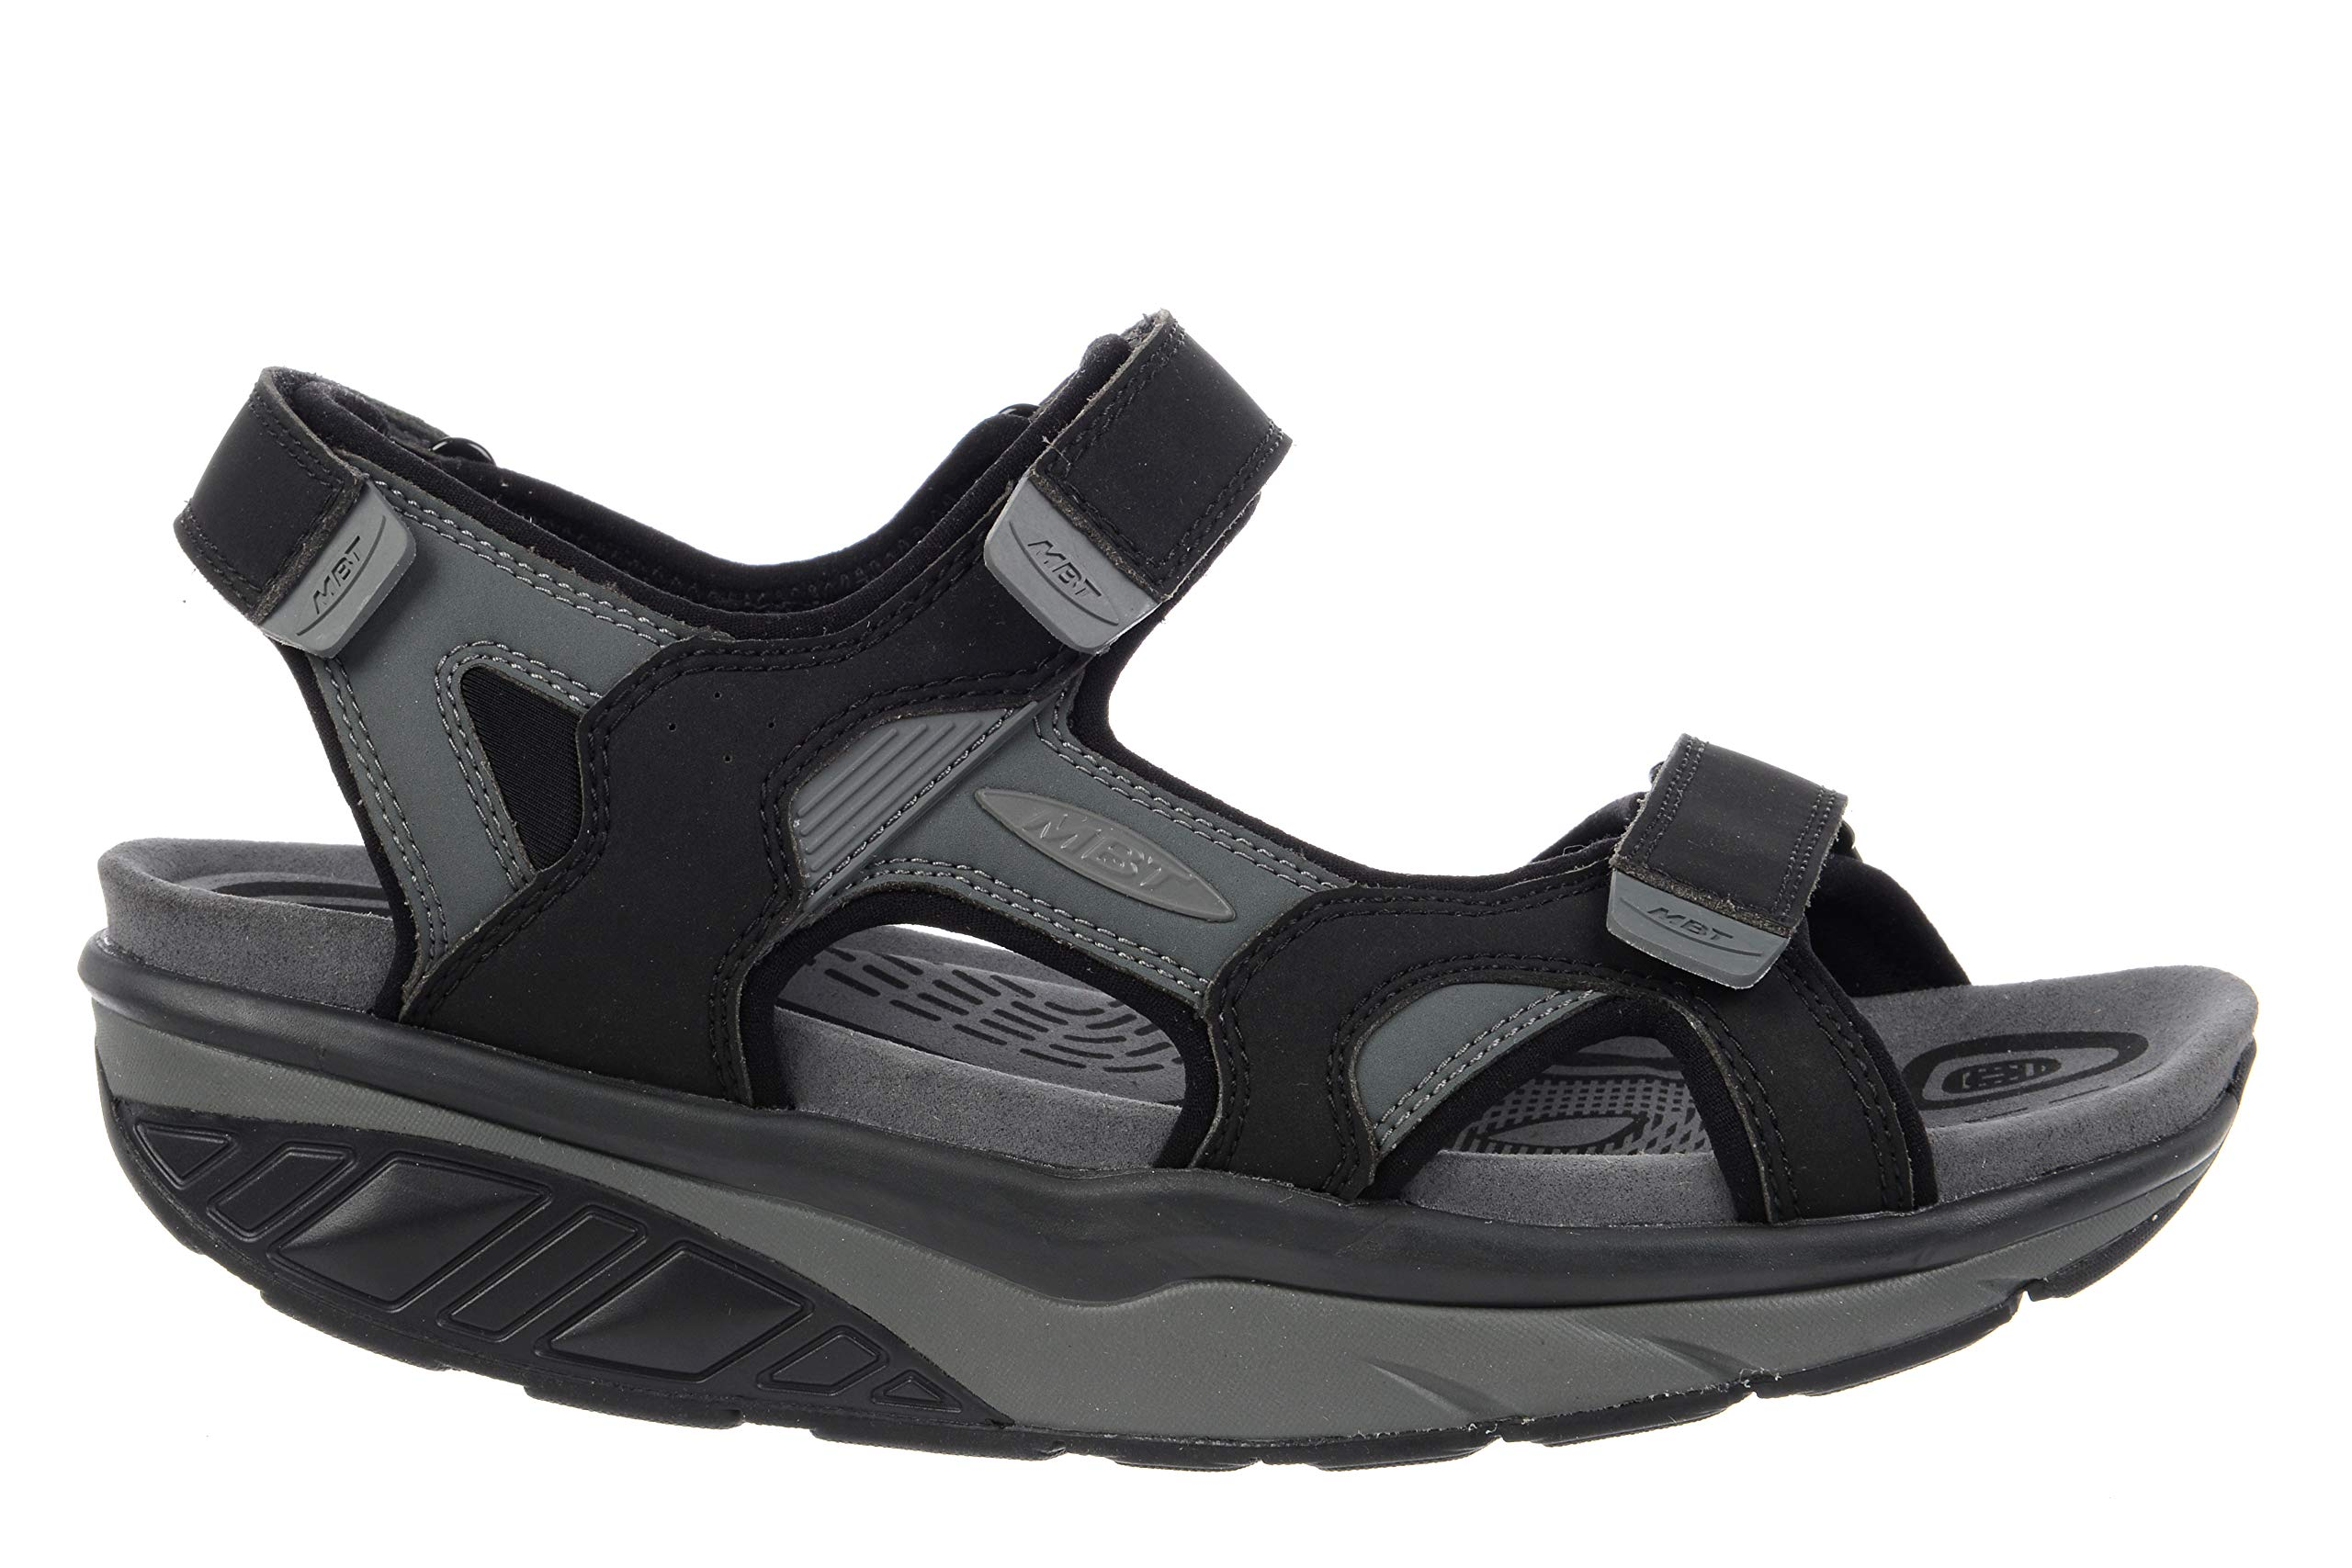 MBT USA Inc Men's Saka 6S Sport Black/Charcoal Gray Outdoor Sandals 700787-201L Size 11-11.5